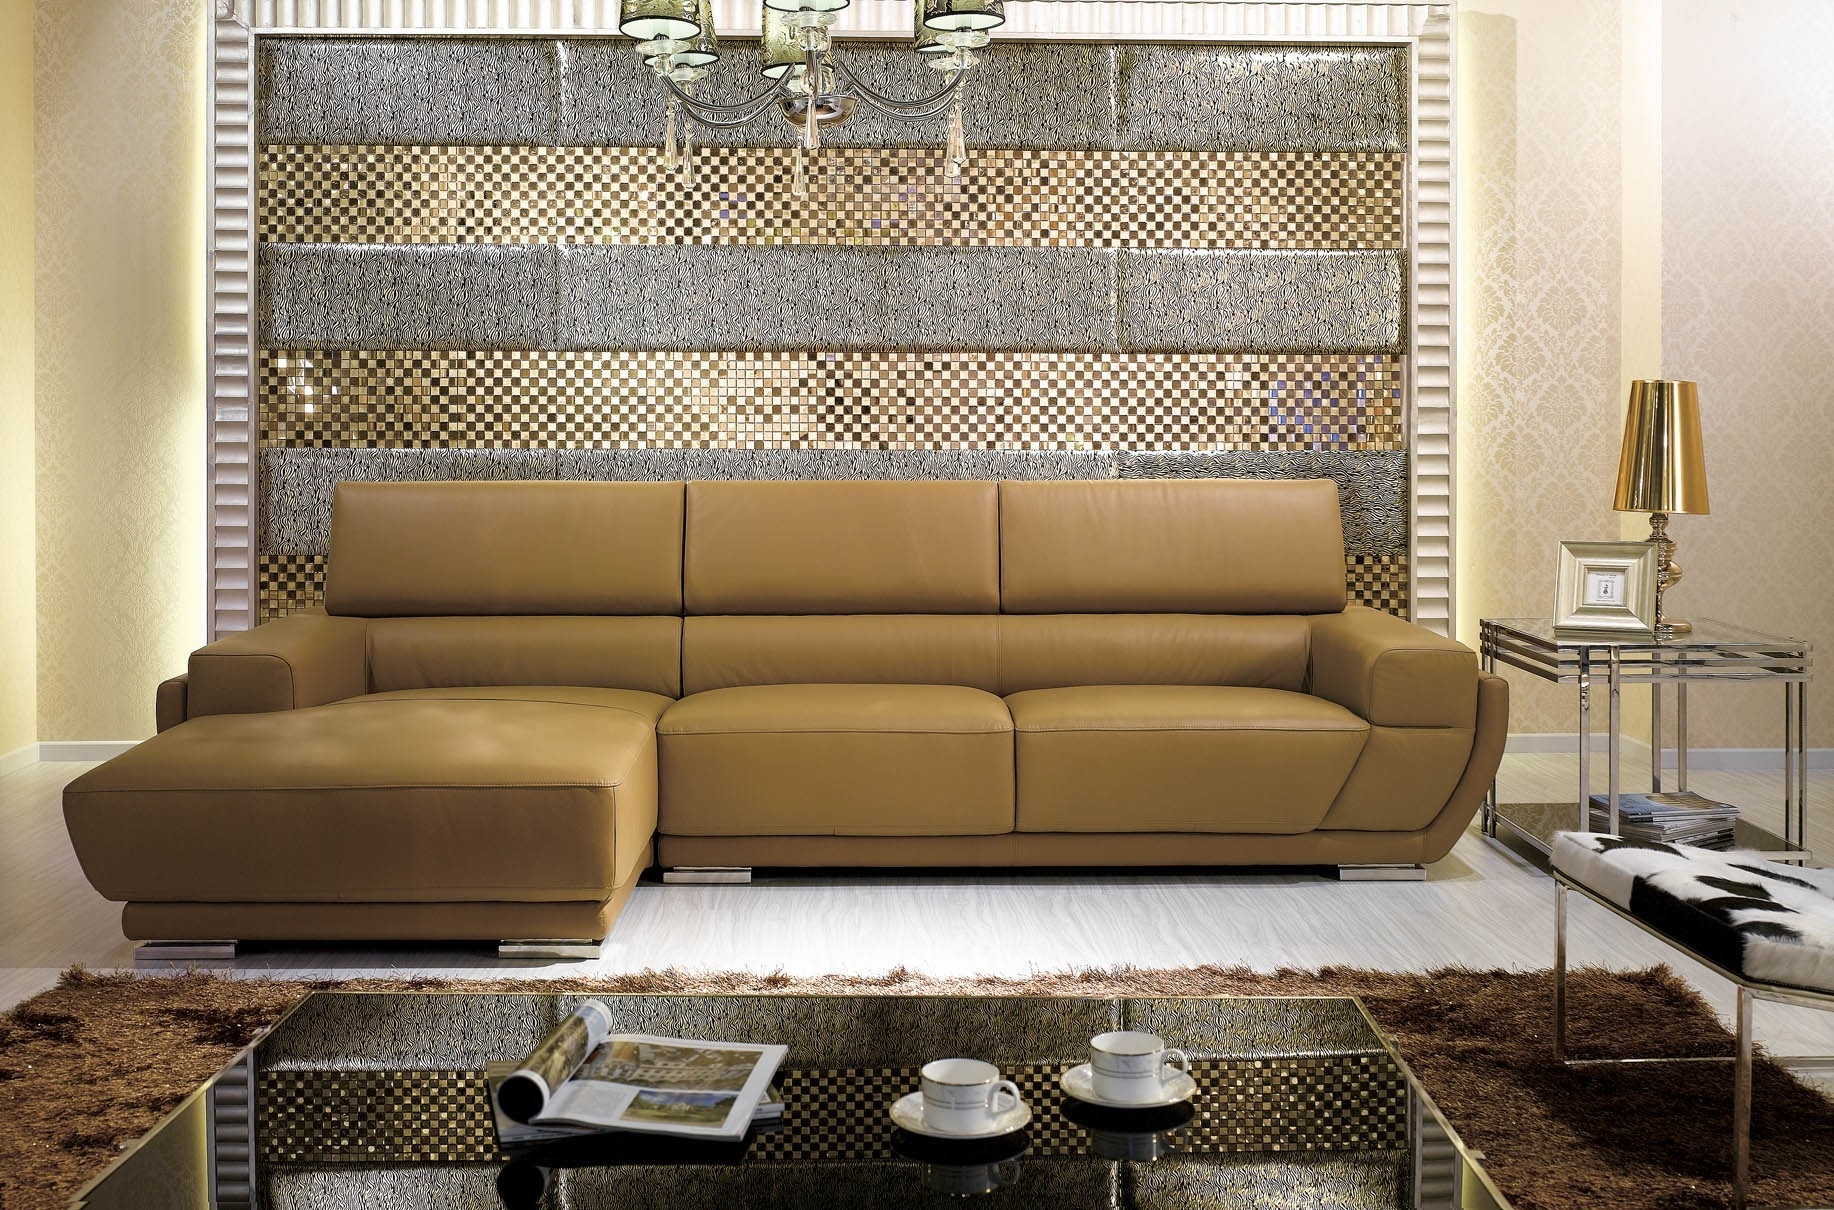 Inspiring Camel Colored Sectional Sofa 48 In Slipcovers For With Camel Colored Sectional Sofa (View 7 of 12)